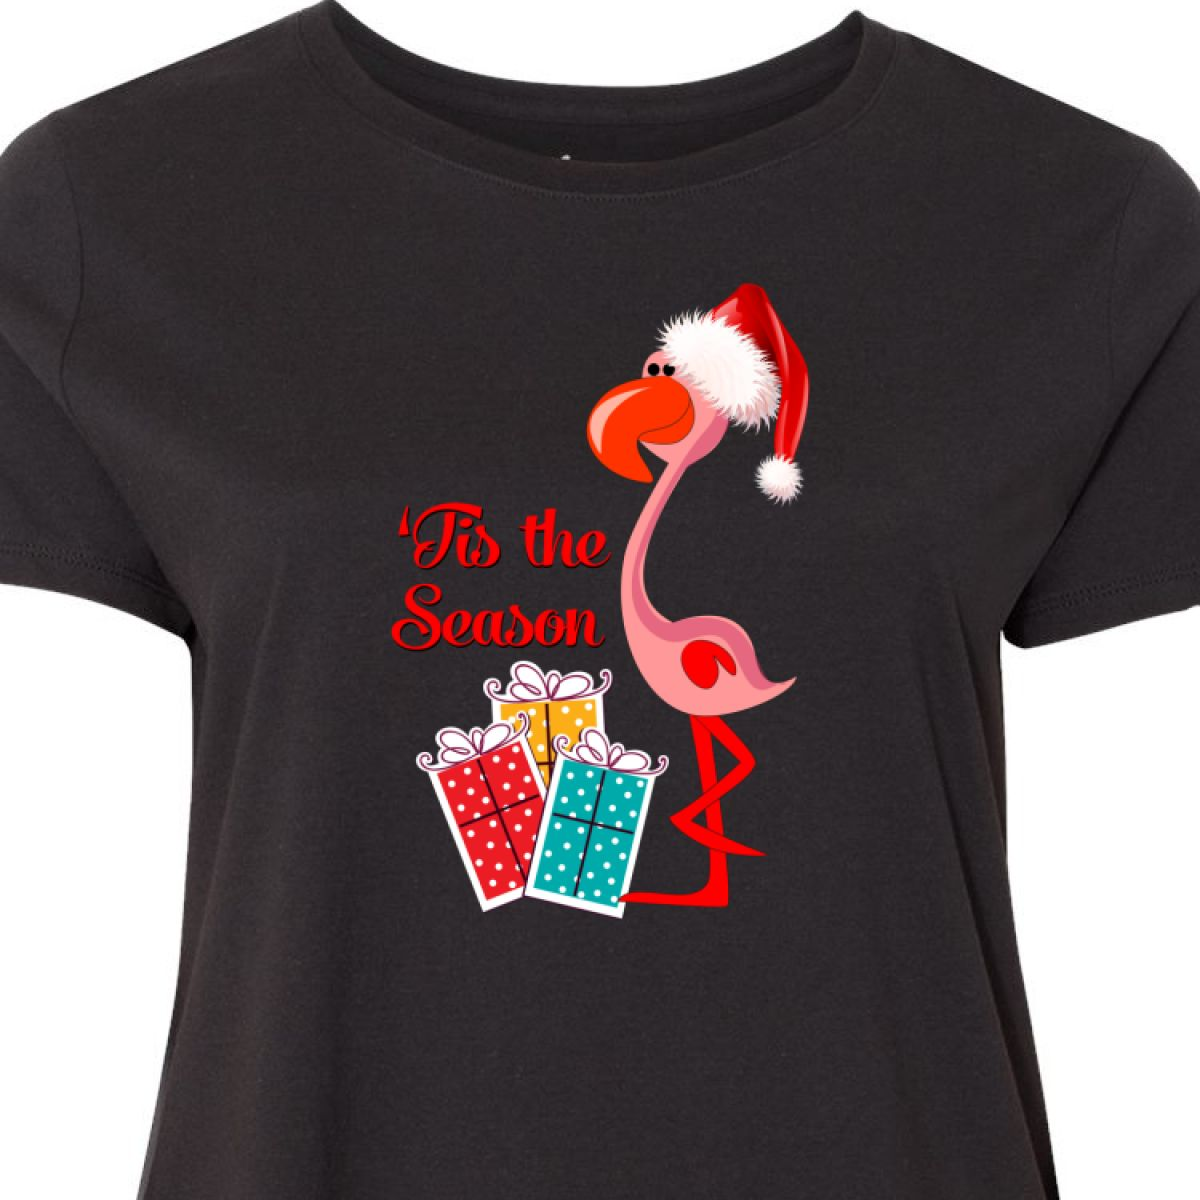 Christmas Tops Plus Size.Details About Inktastic Christmas Flamingo Women S Plus Size T Shirt Xmas Santa Merry Holiday